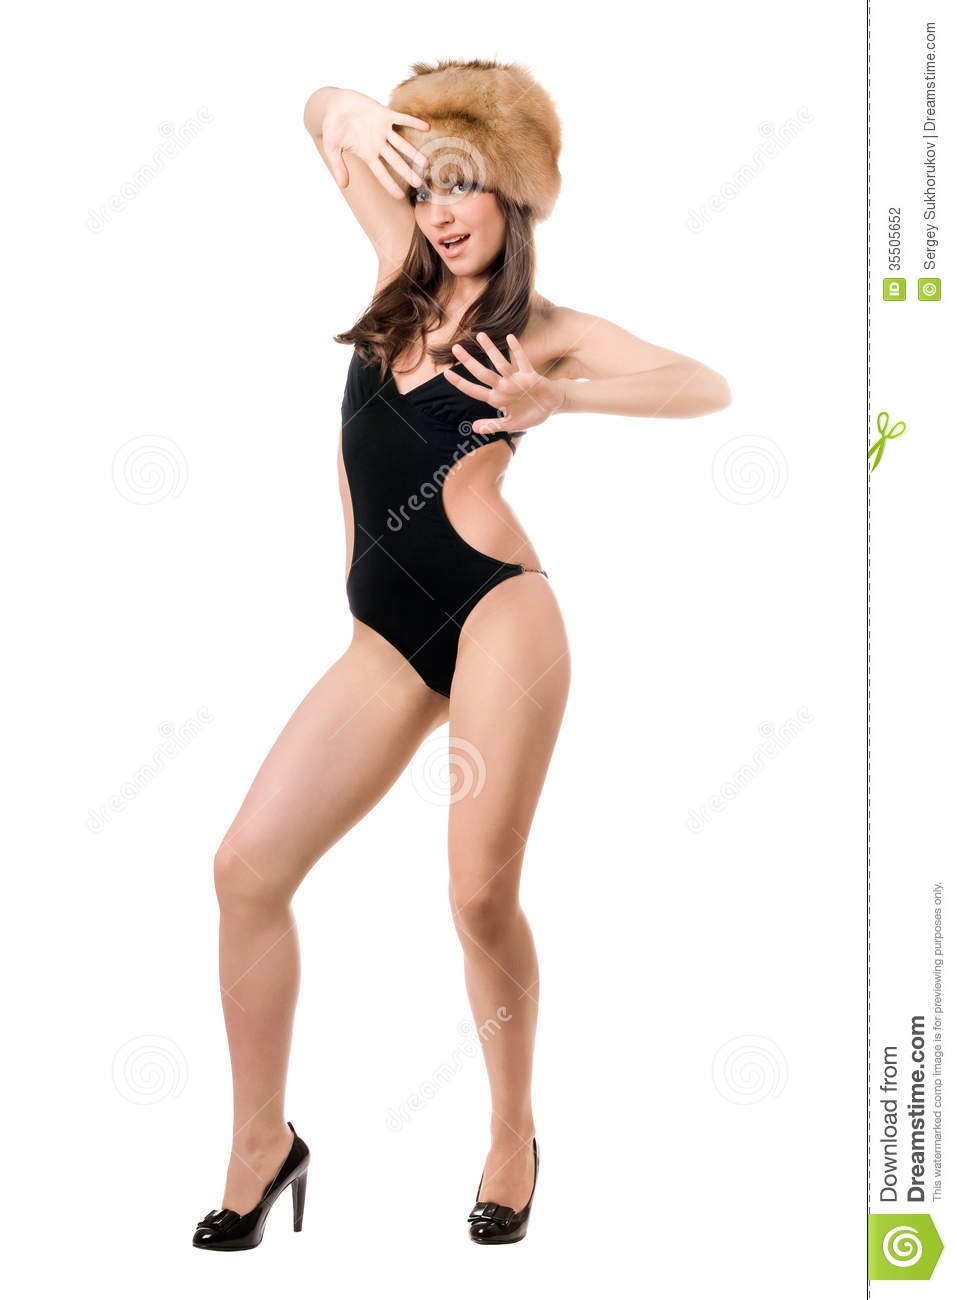 lady posing in swimsuit and fur-cap